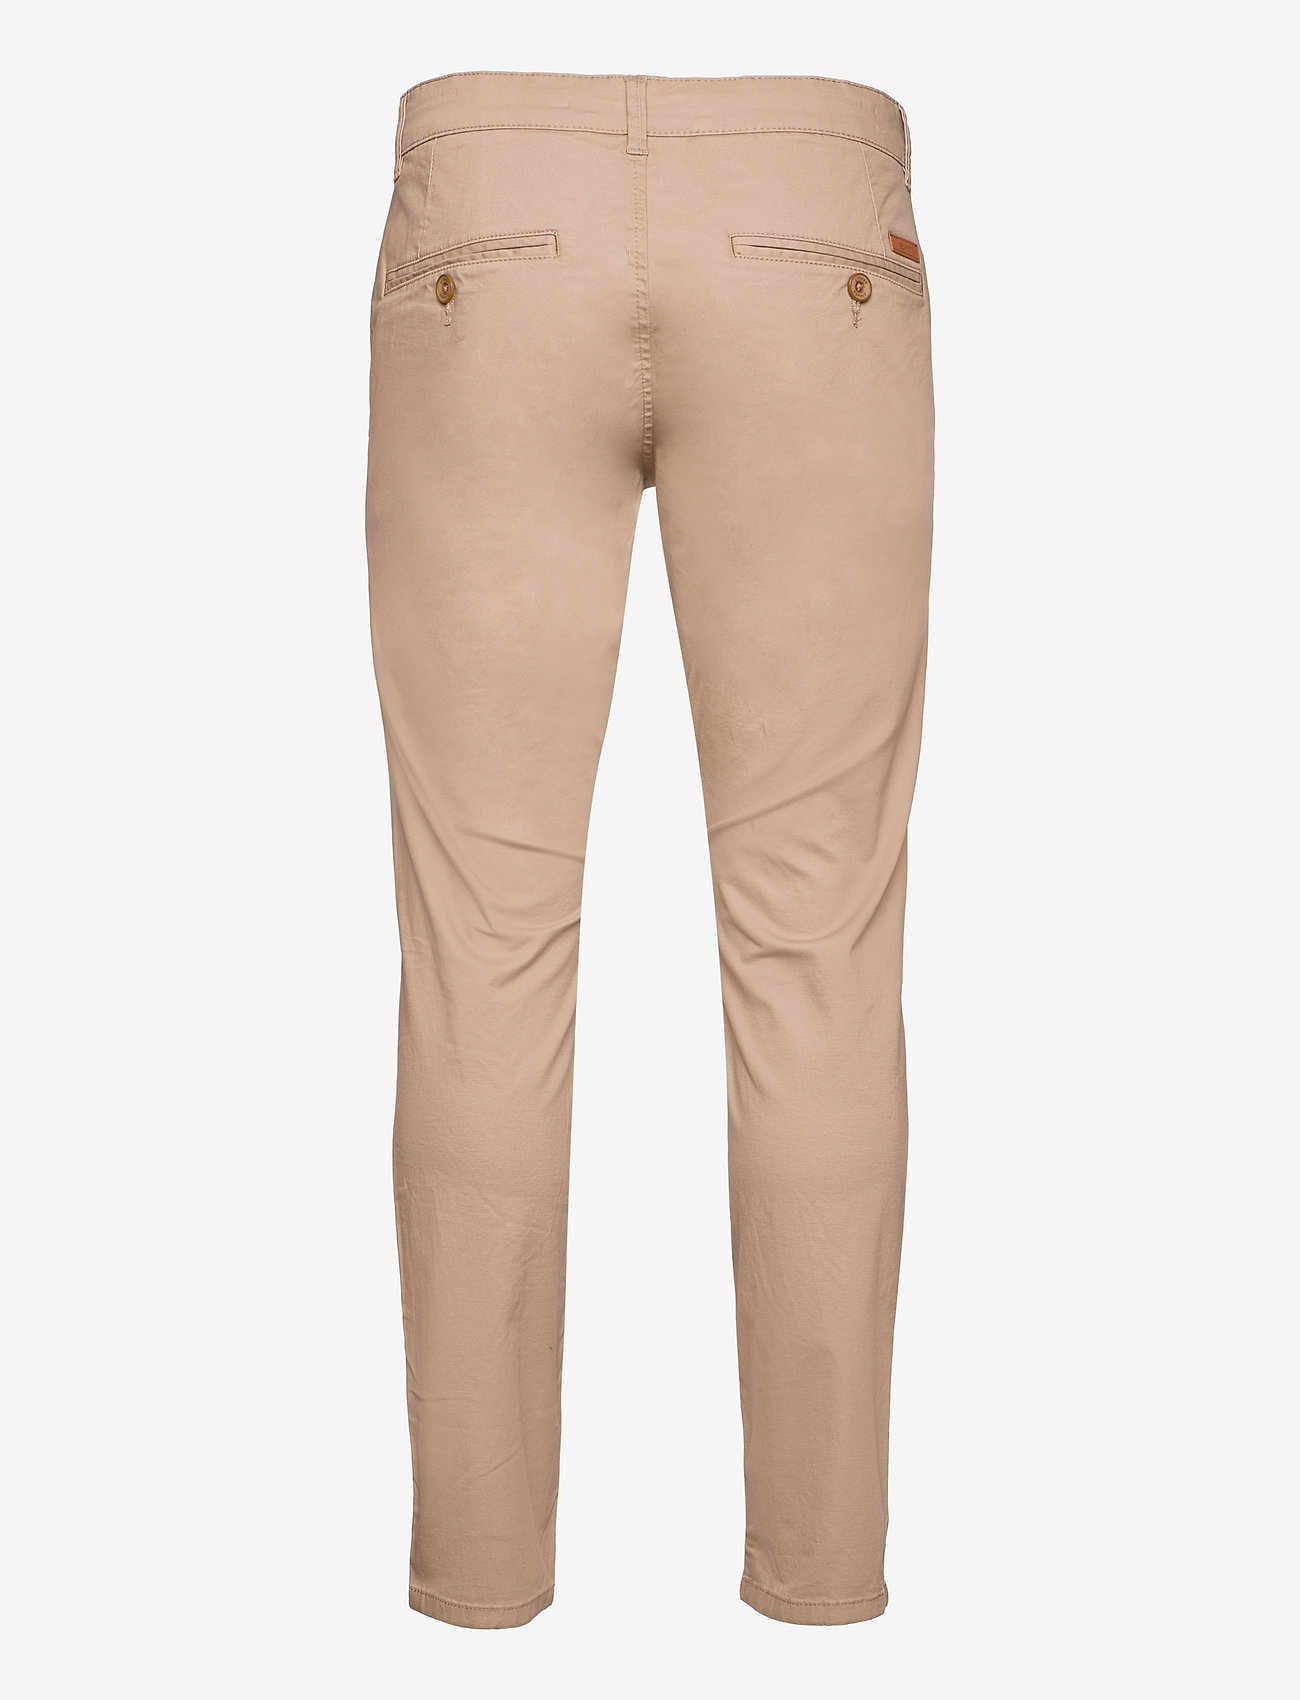 Esprit Casual - Pants woven - chino's - beige - 1